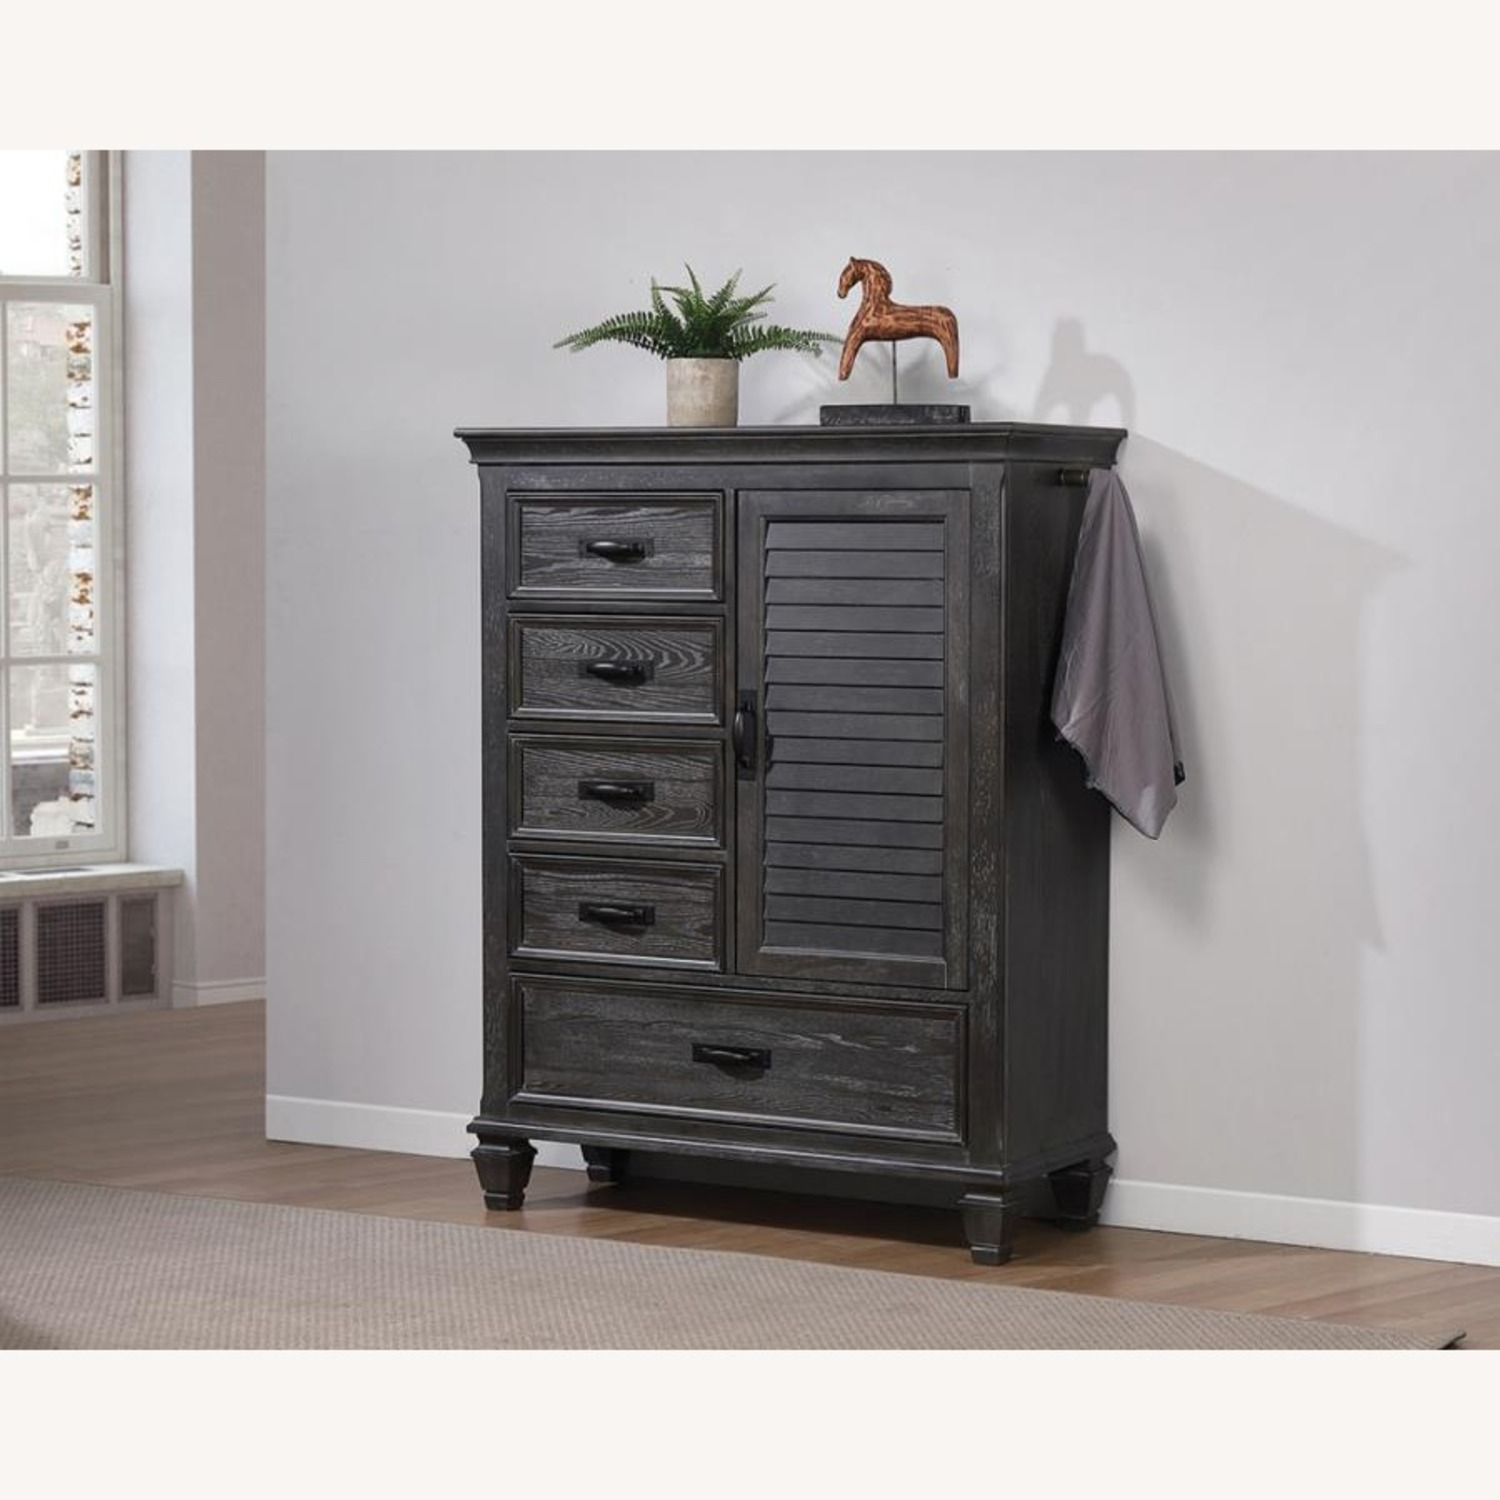 Gentleman's Chest In Weathered Sage Finish - image-2